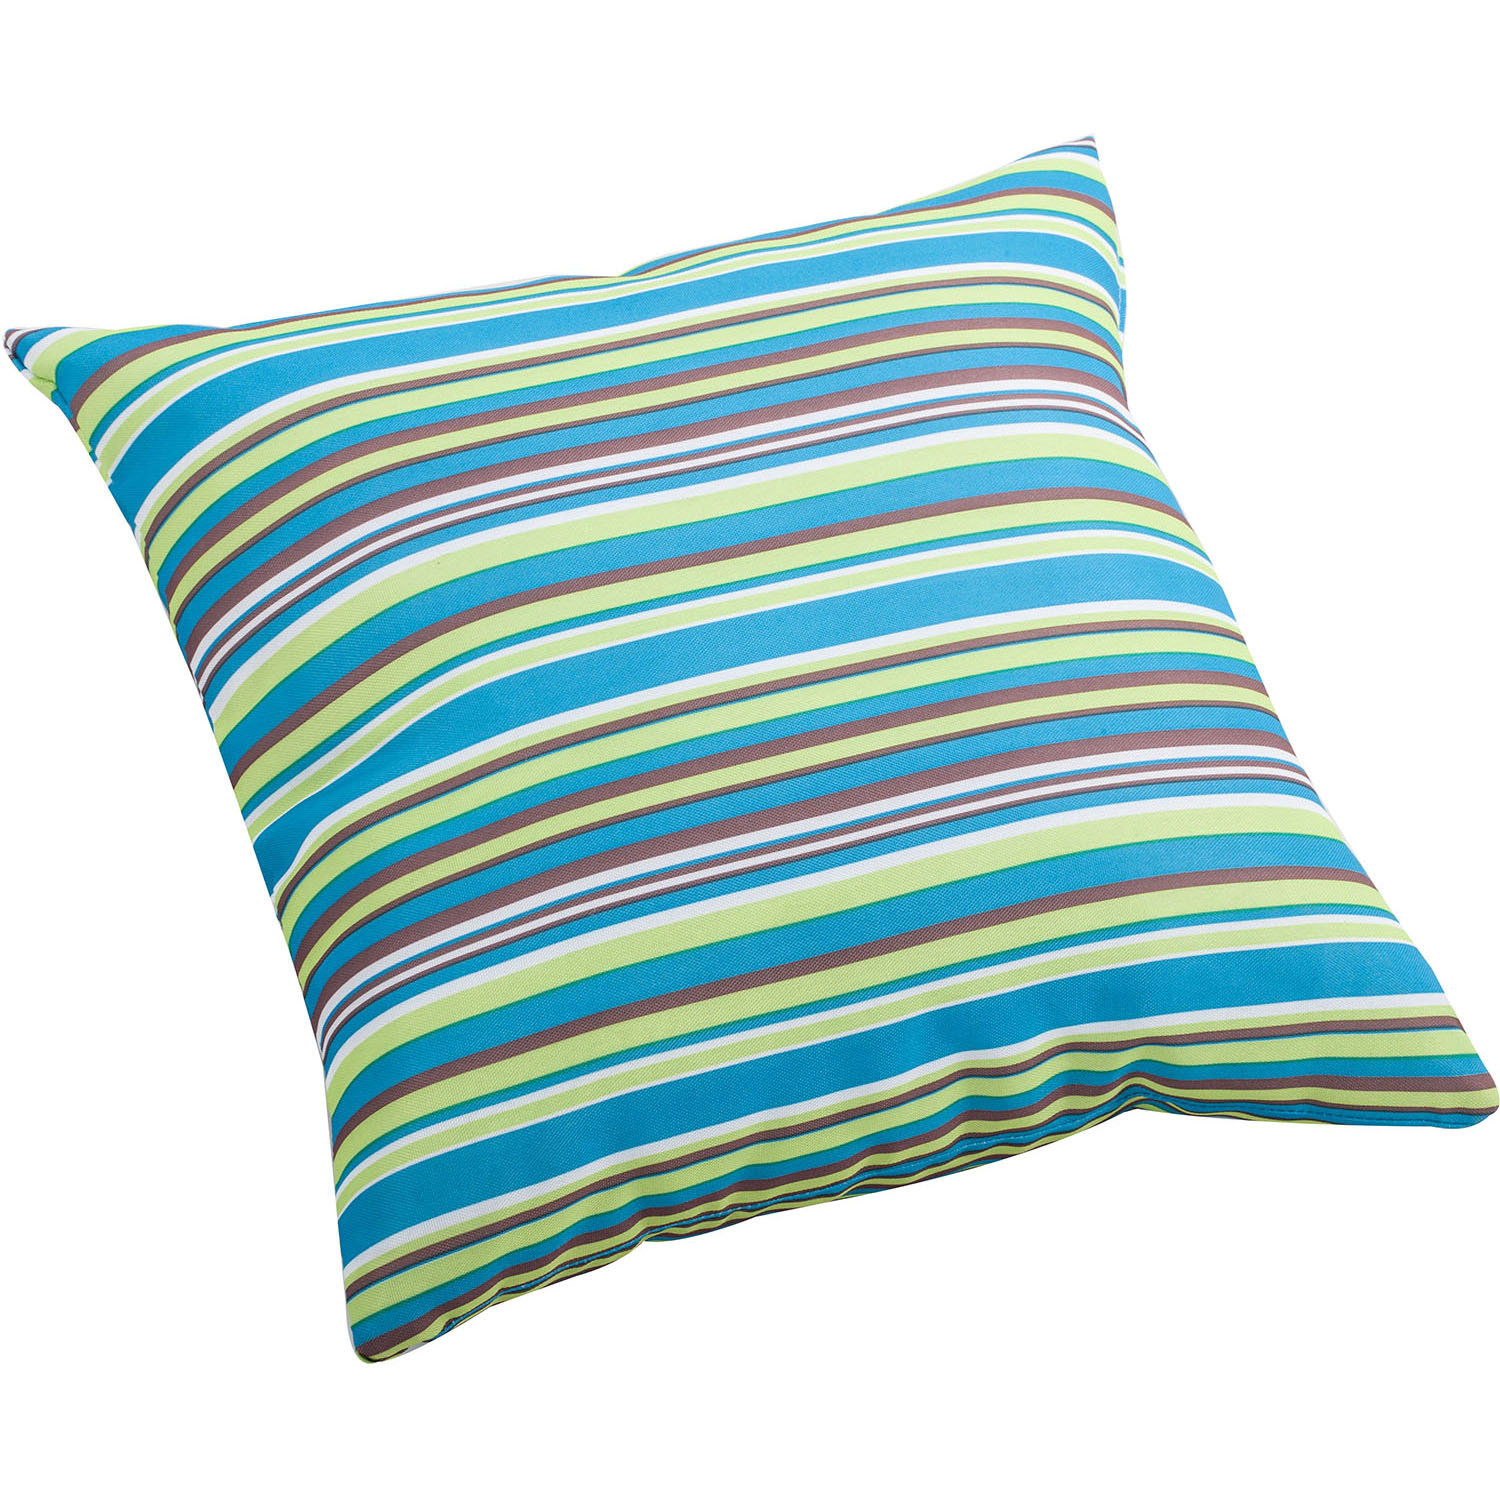 Outdoor Puppy Pillow With Multicolor Stripe Pattern: Size Options